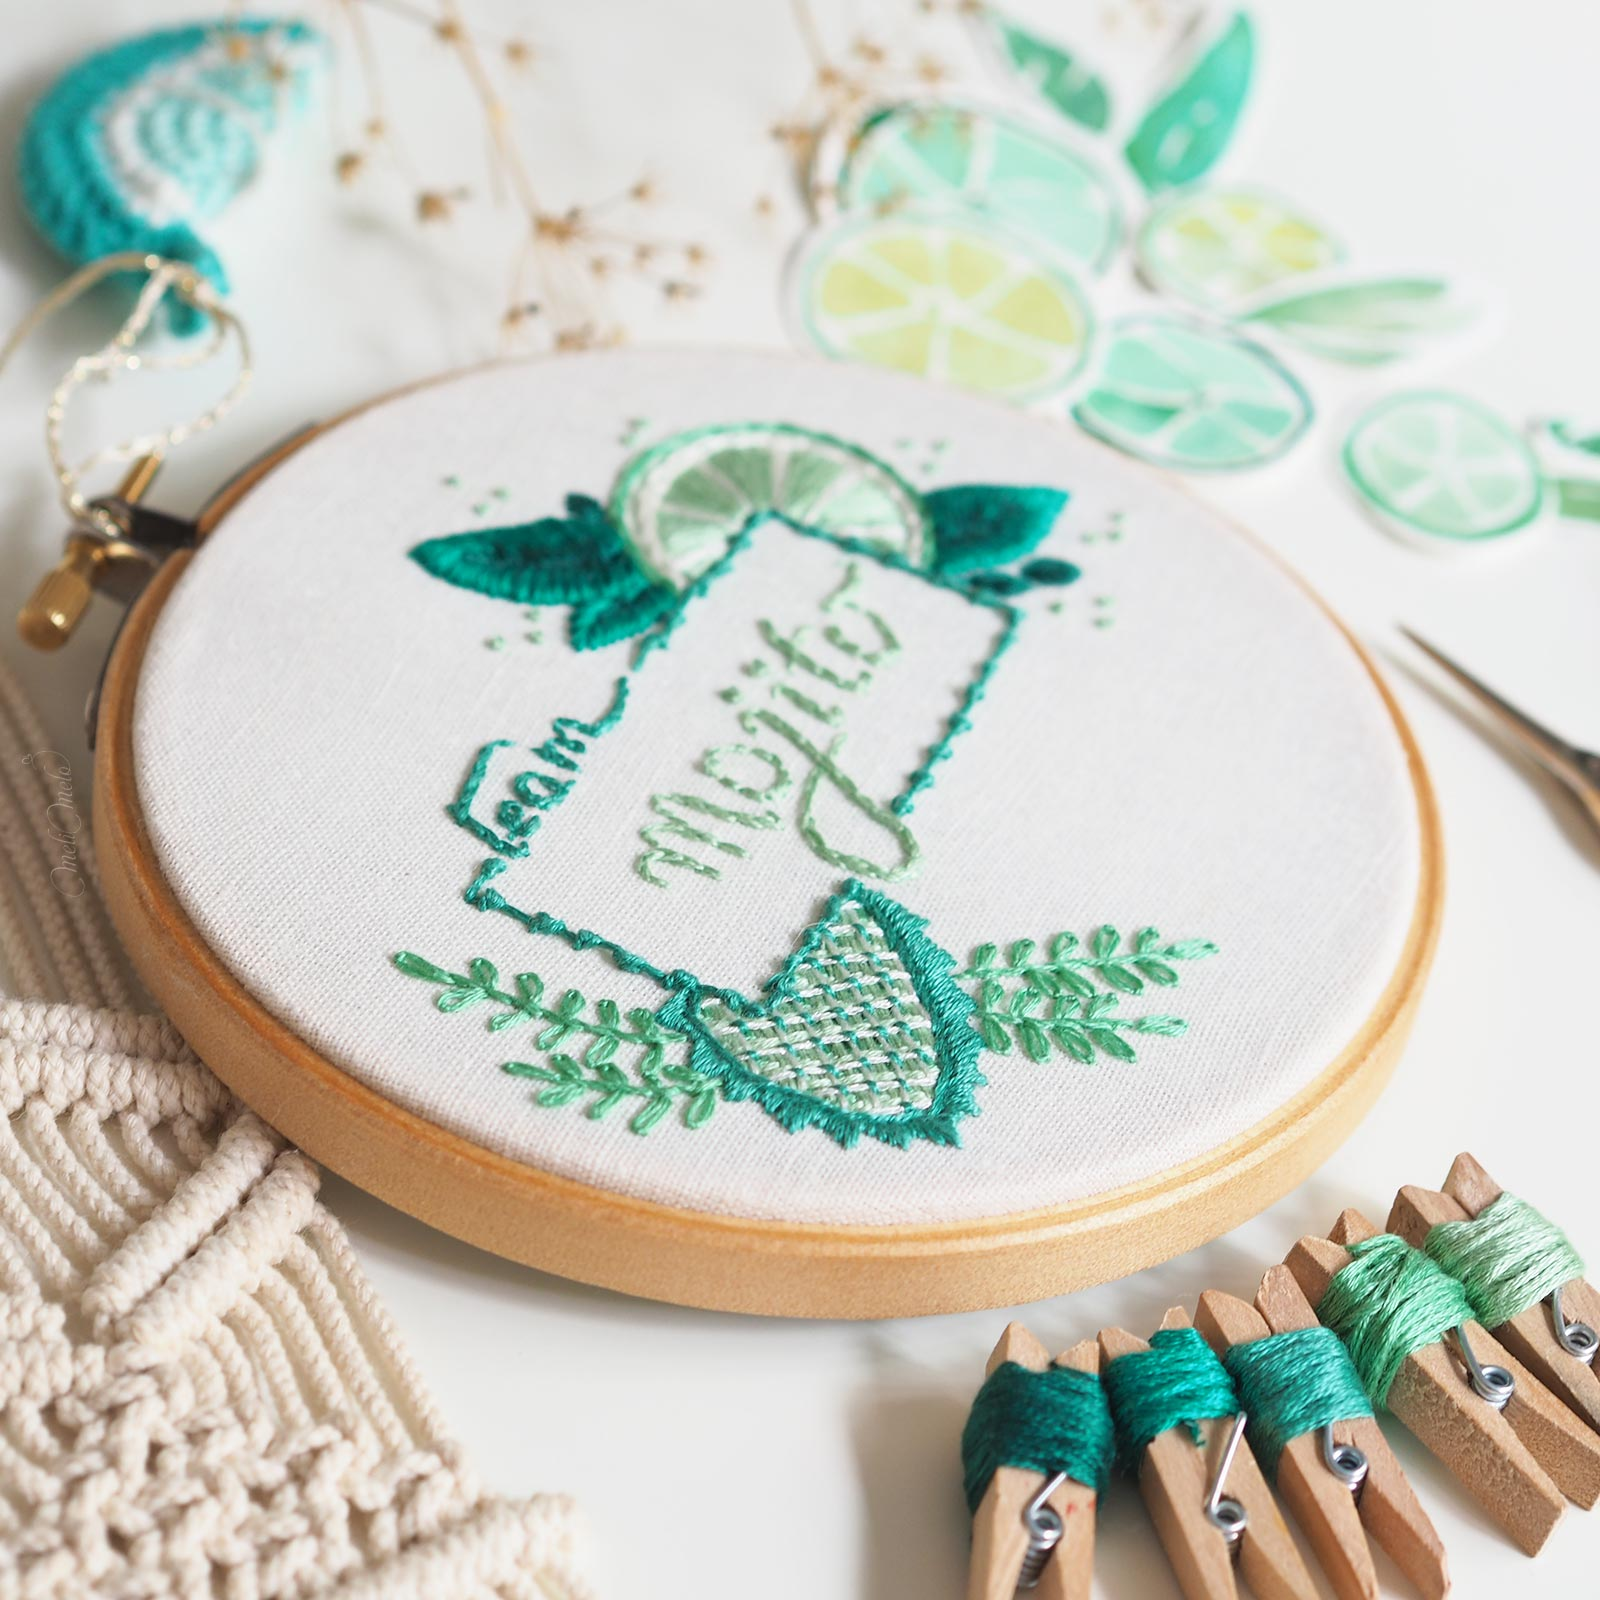 mojito-broderie-embroidery-lime-vert-mouline-dmc-auverasoie-laboutiquedemelimelo